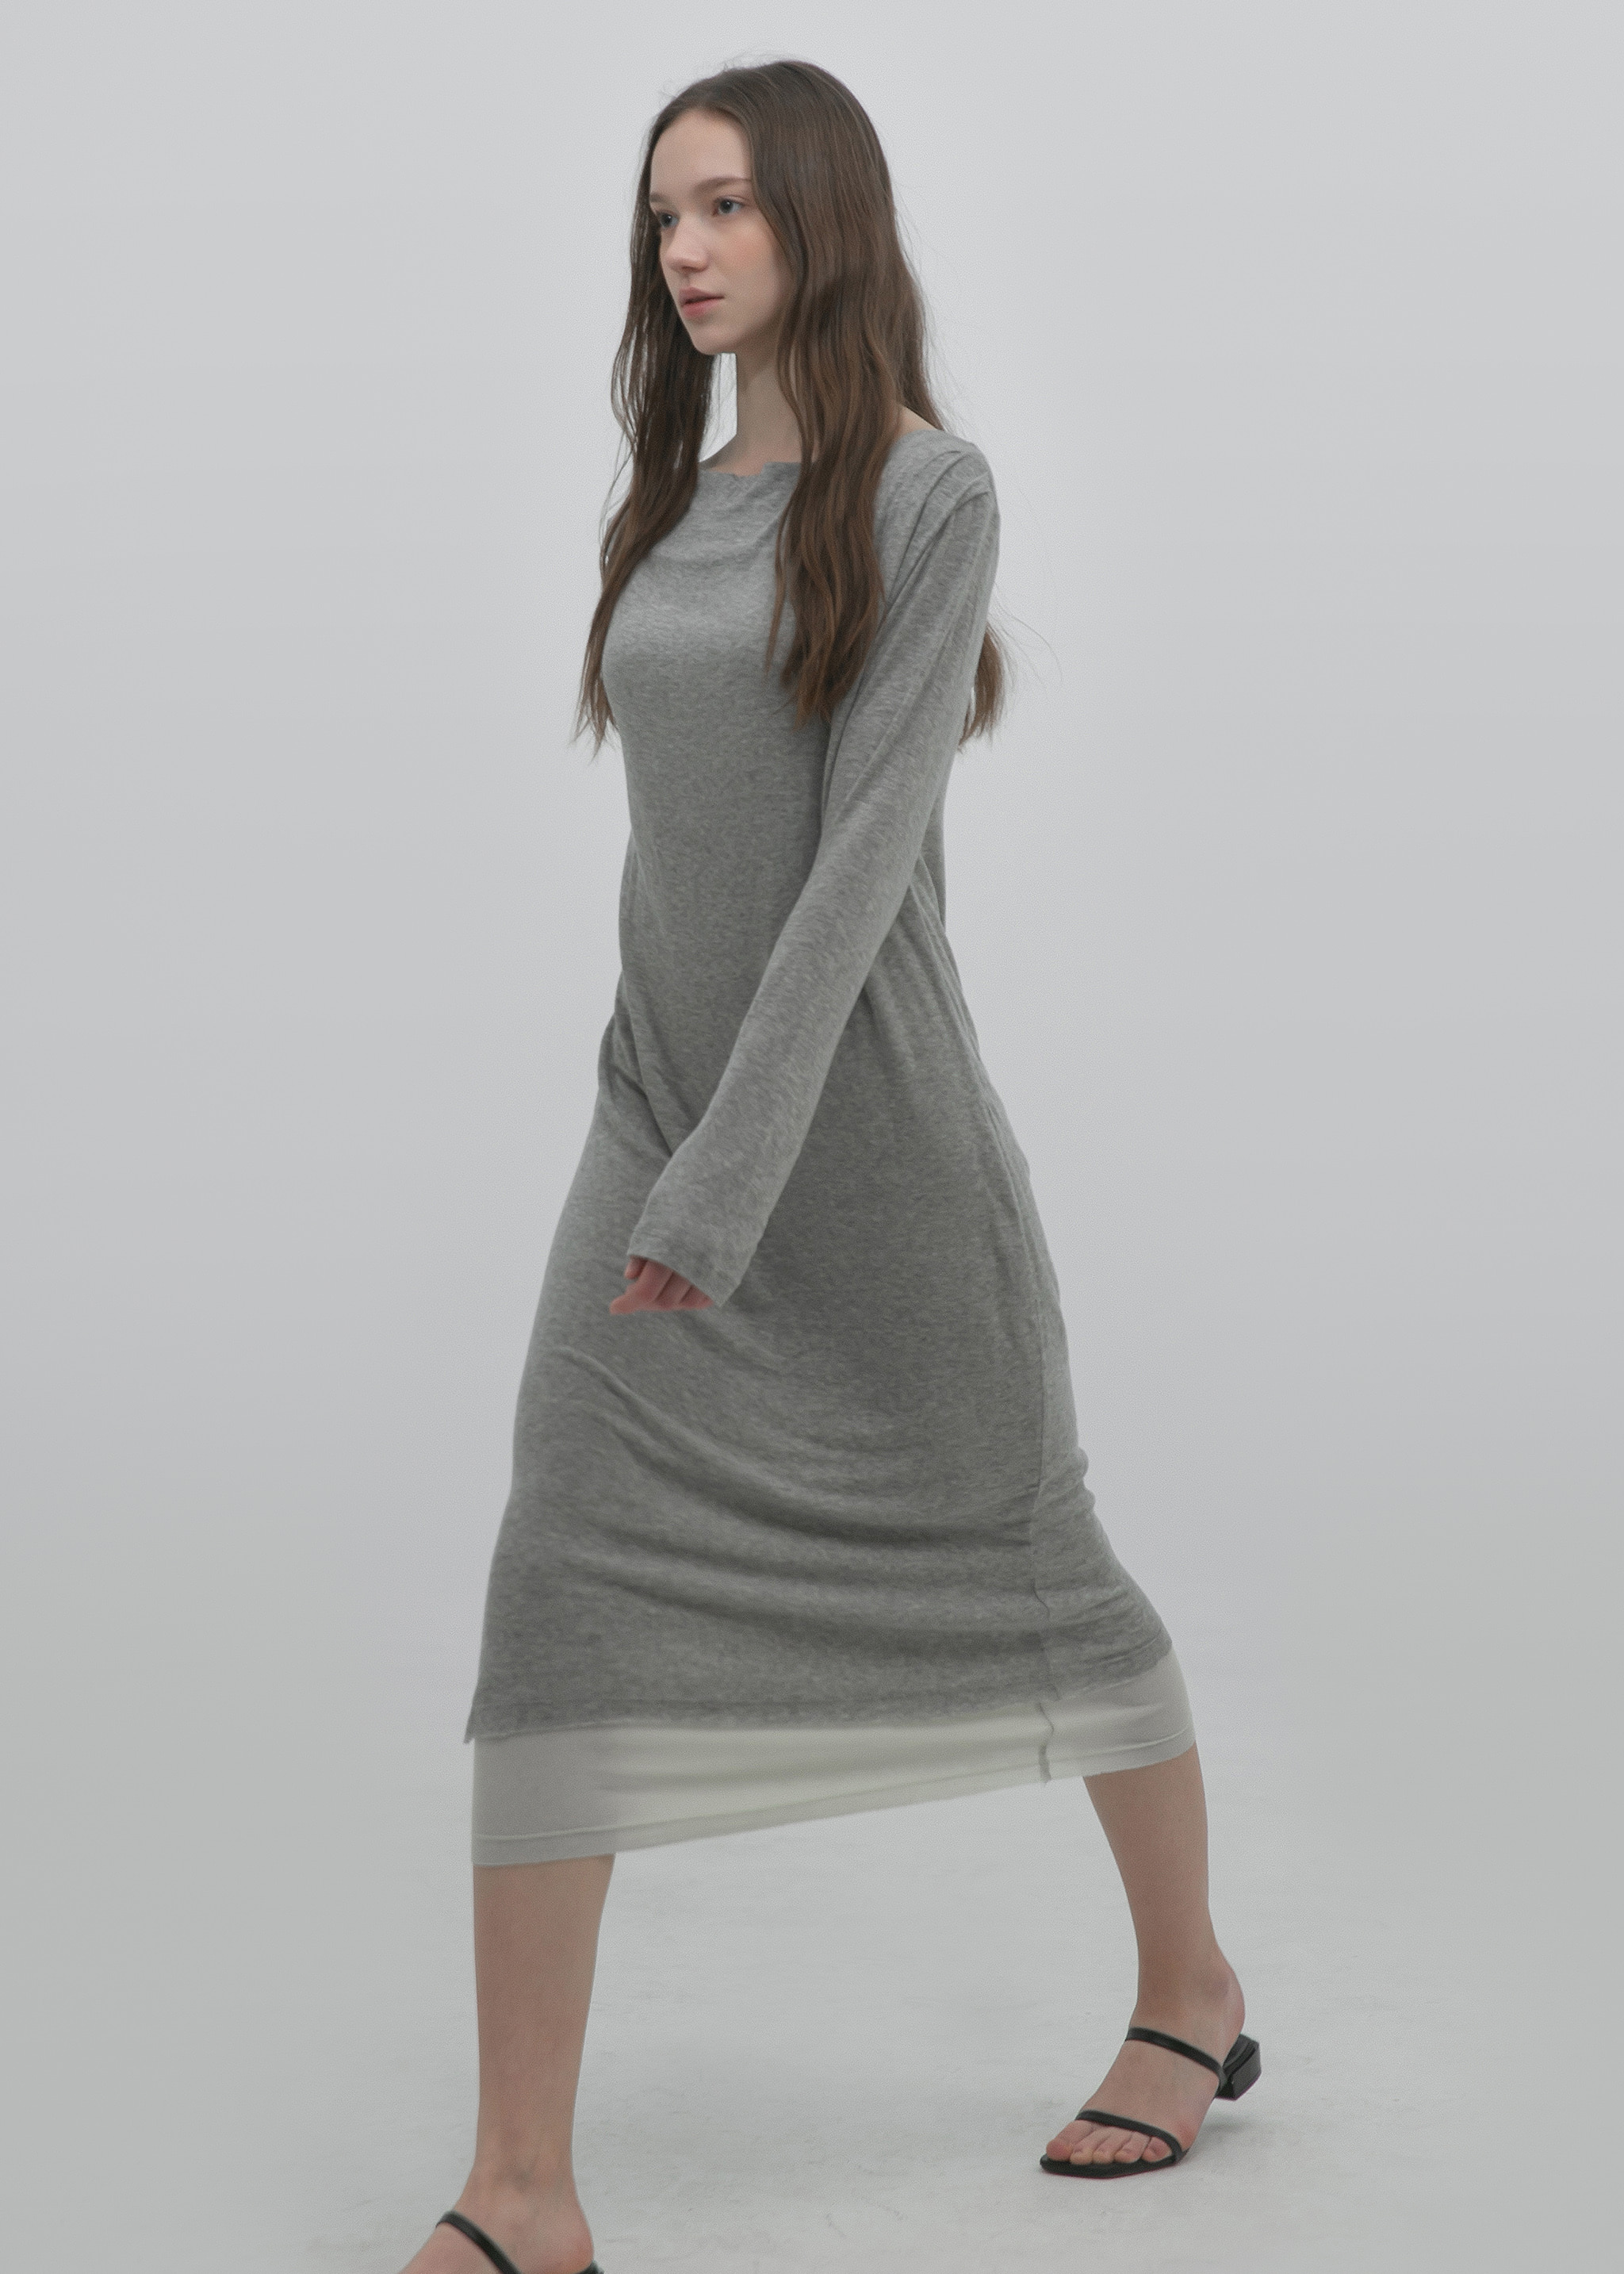 LAYERED JERSEY DRESS (GREY/MINT)